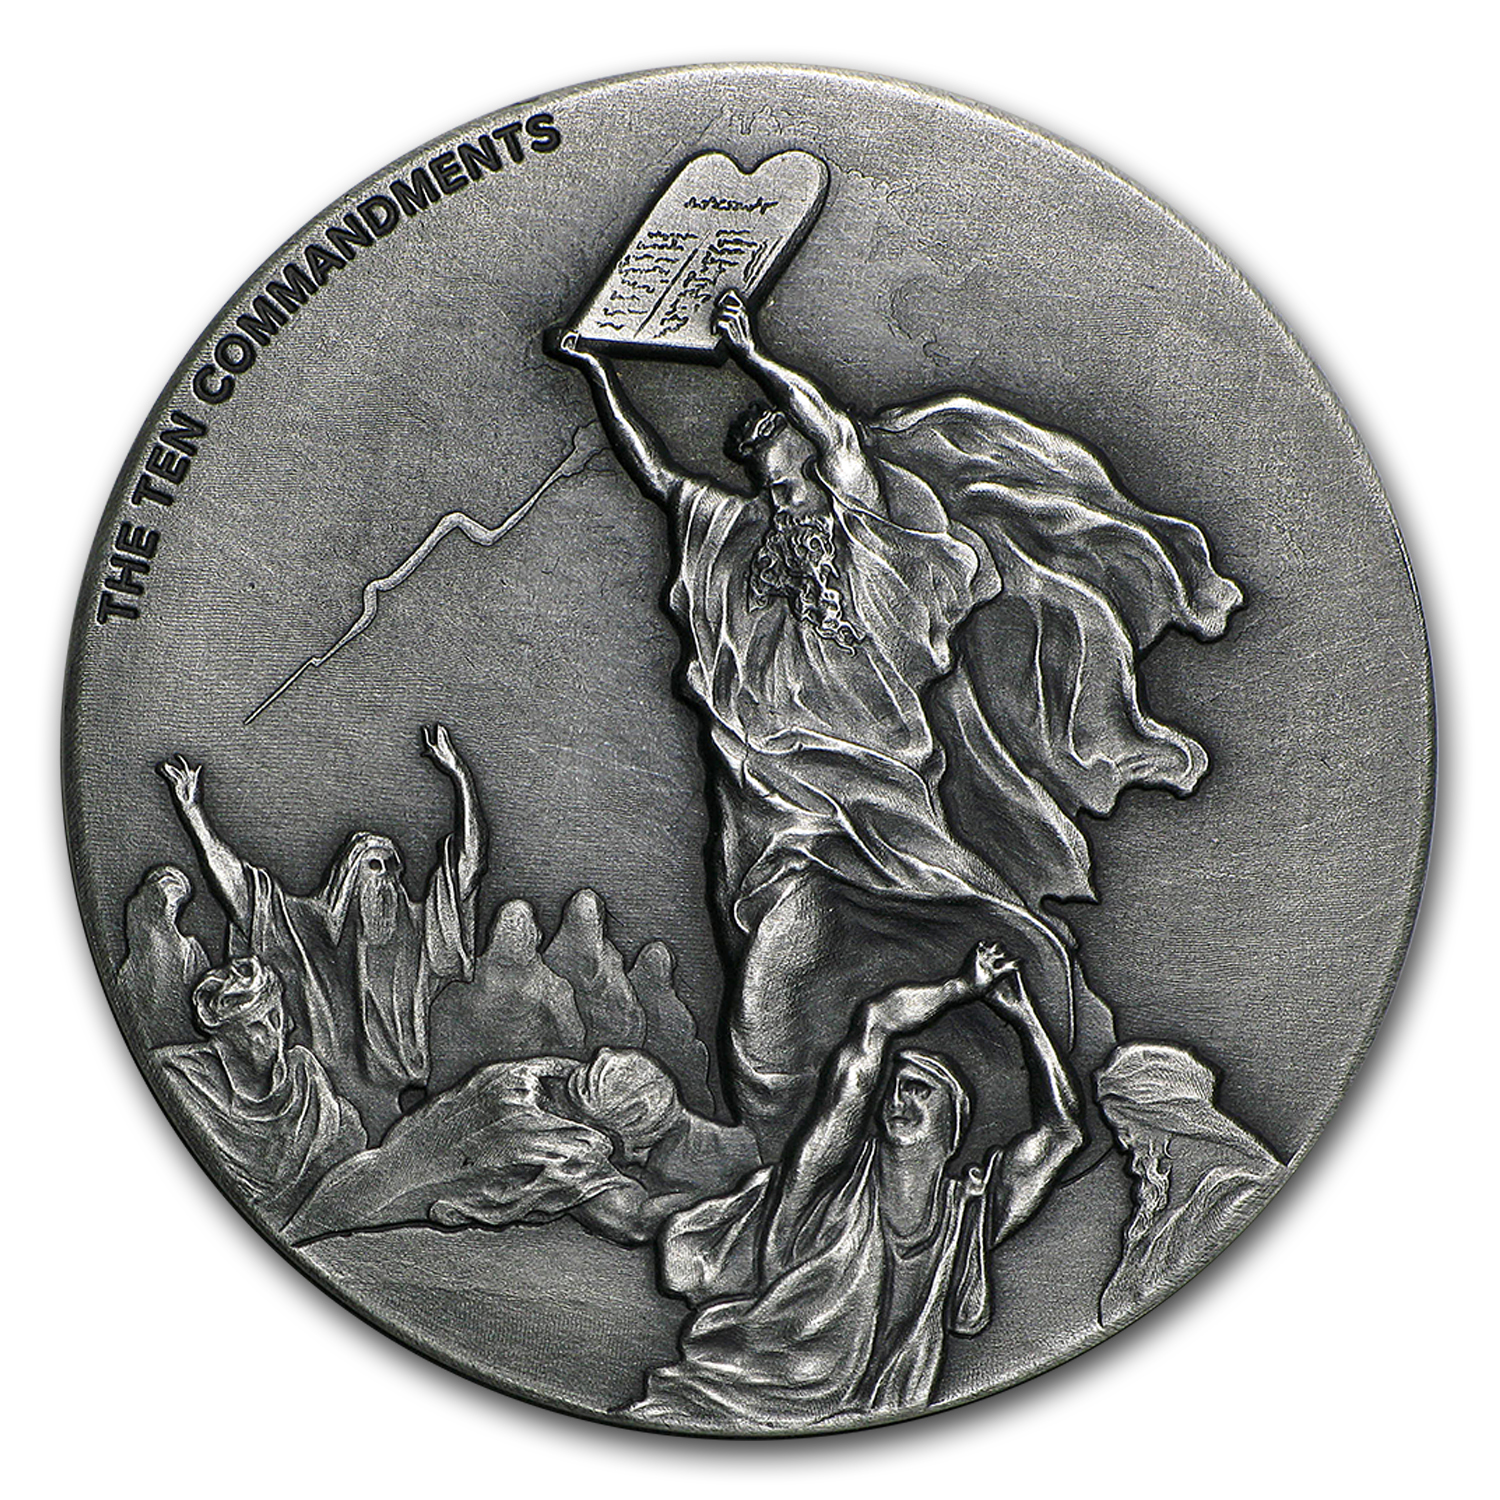 2015 2 oz Silver Coin - Biblical Series (Ten Commandments)